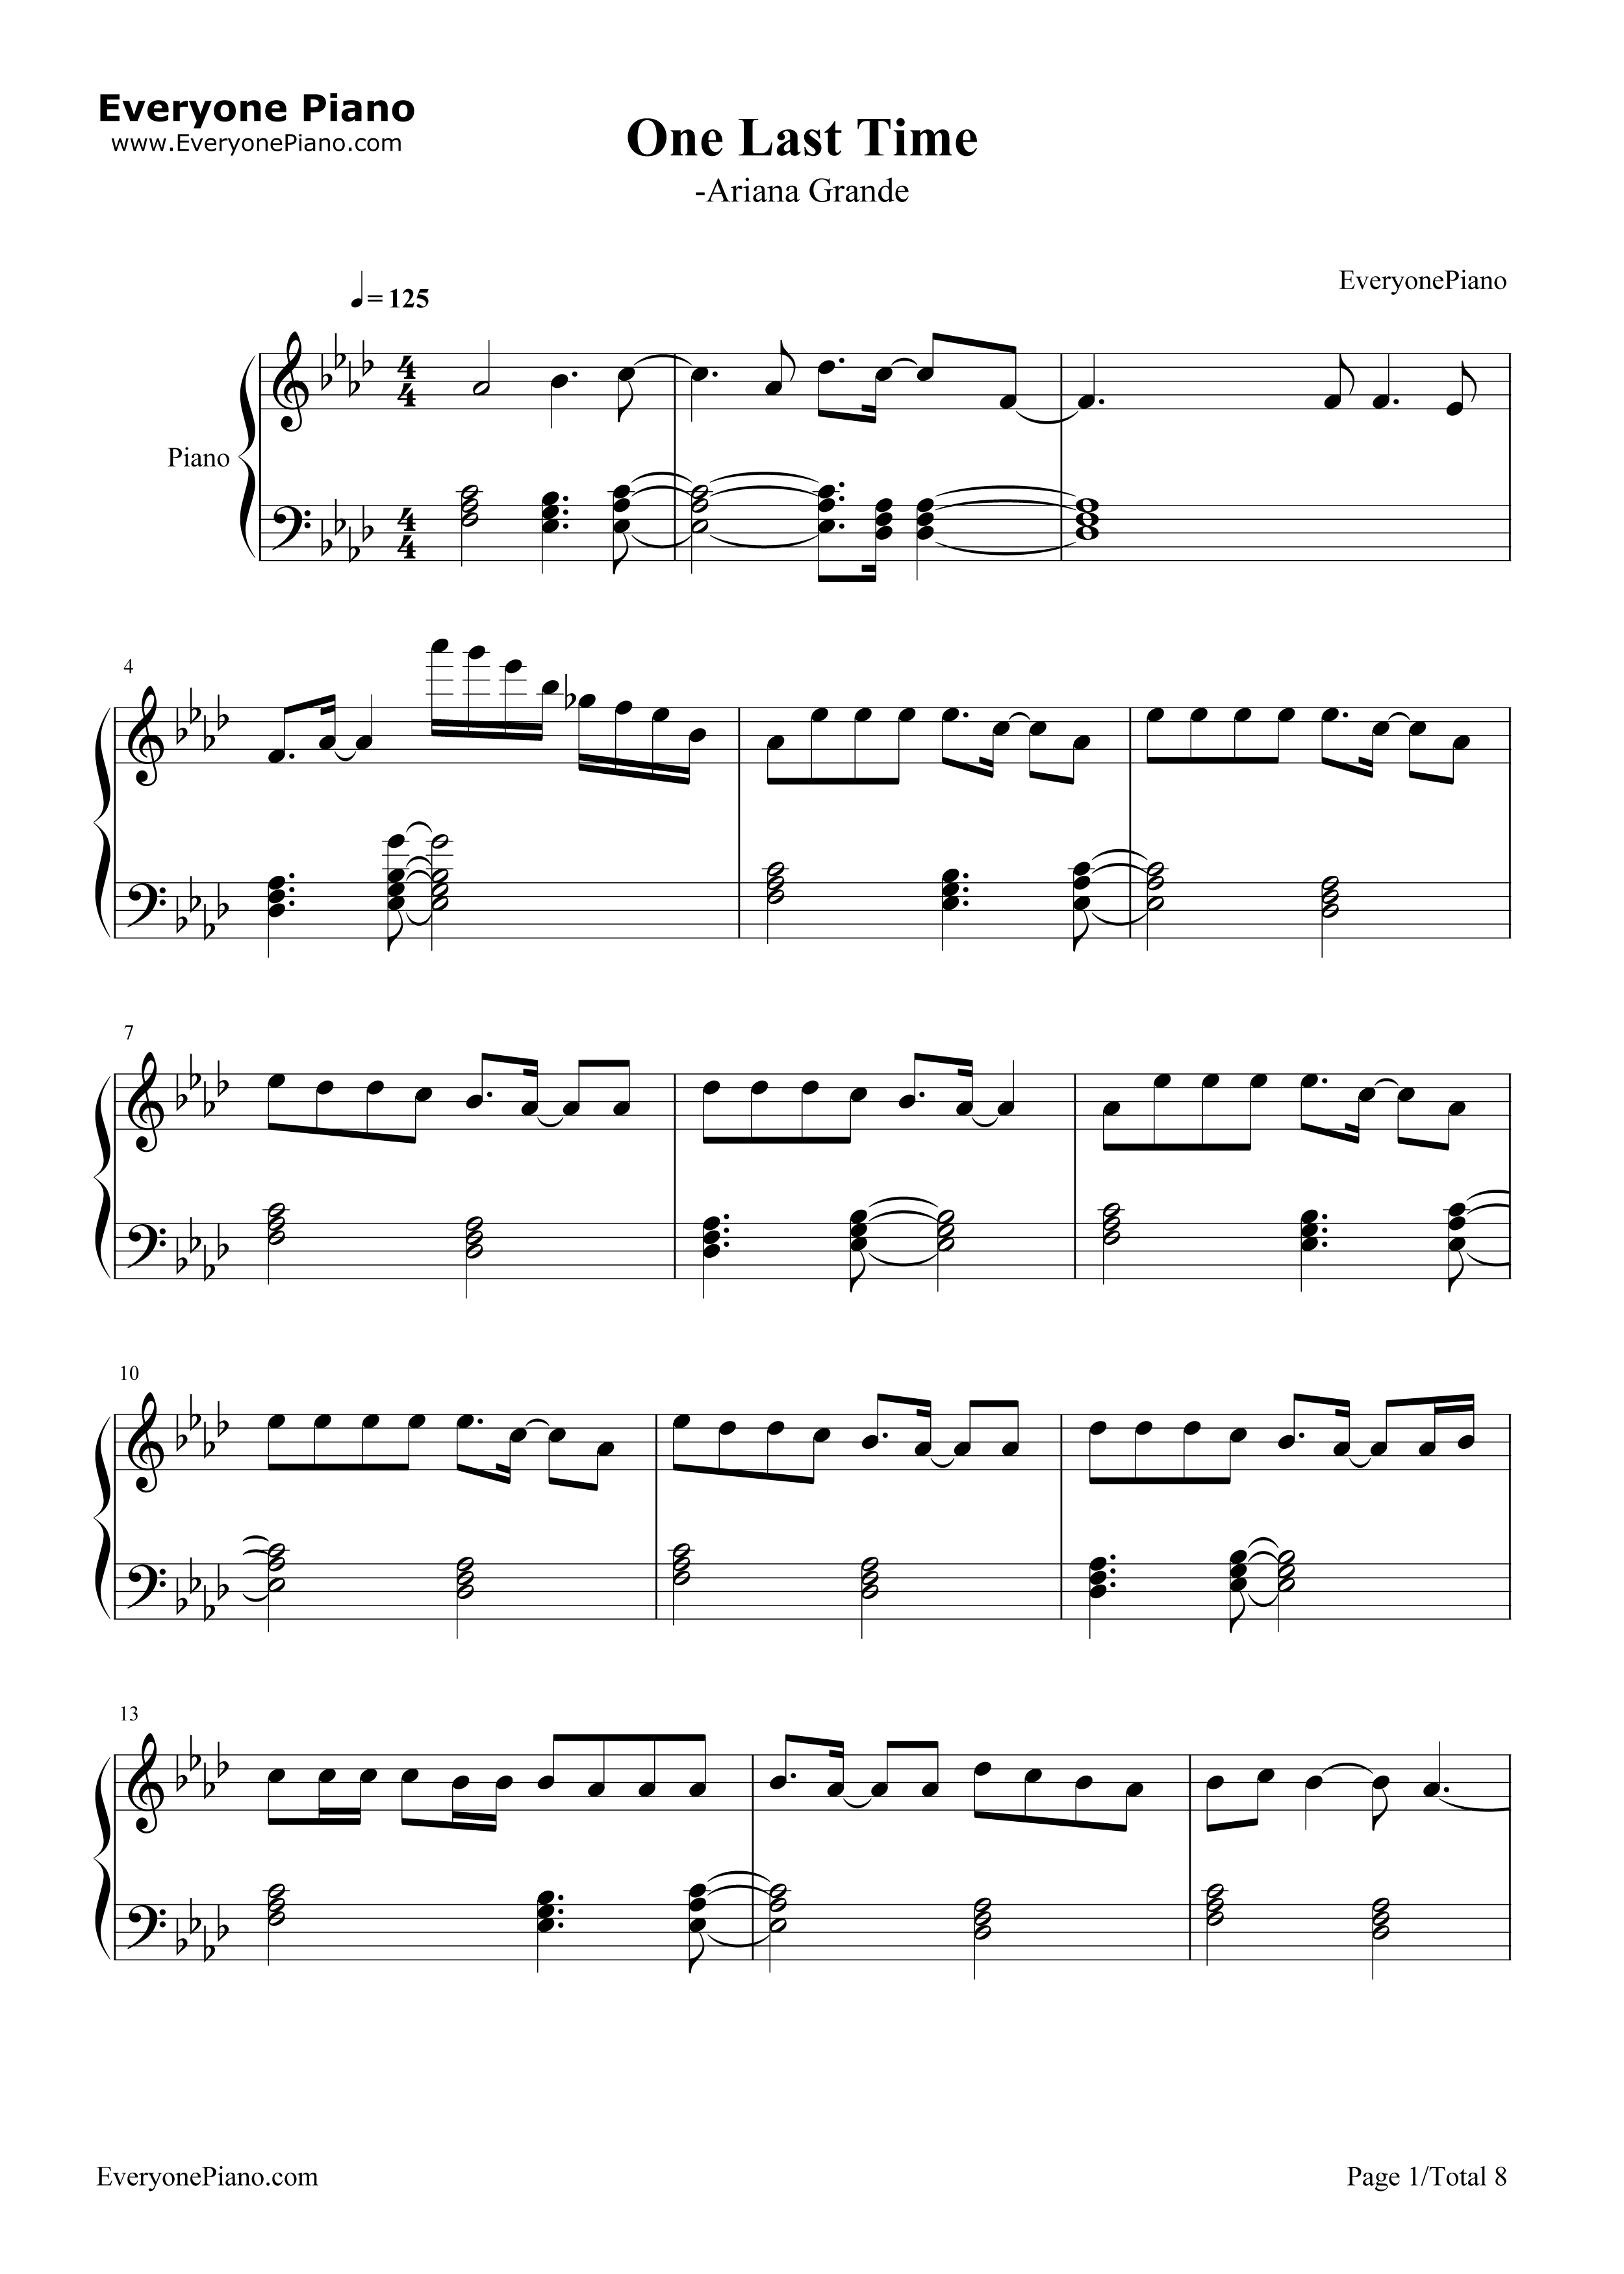 One last time ariana grande stave preview 1 free piano sheet listen now print sheet one last time ariana grande stave preview 1 hexwebz Image collections